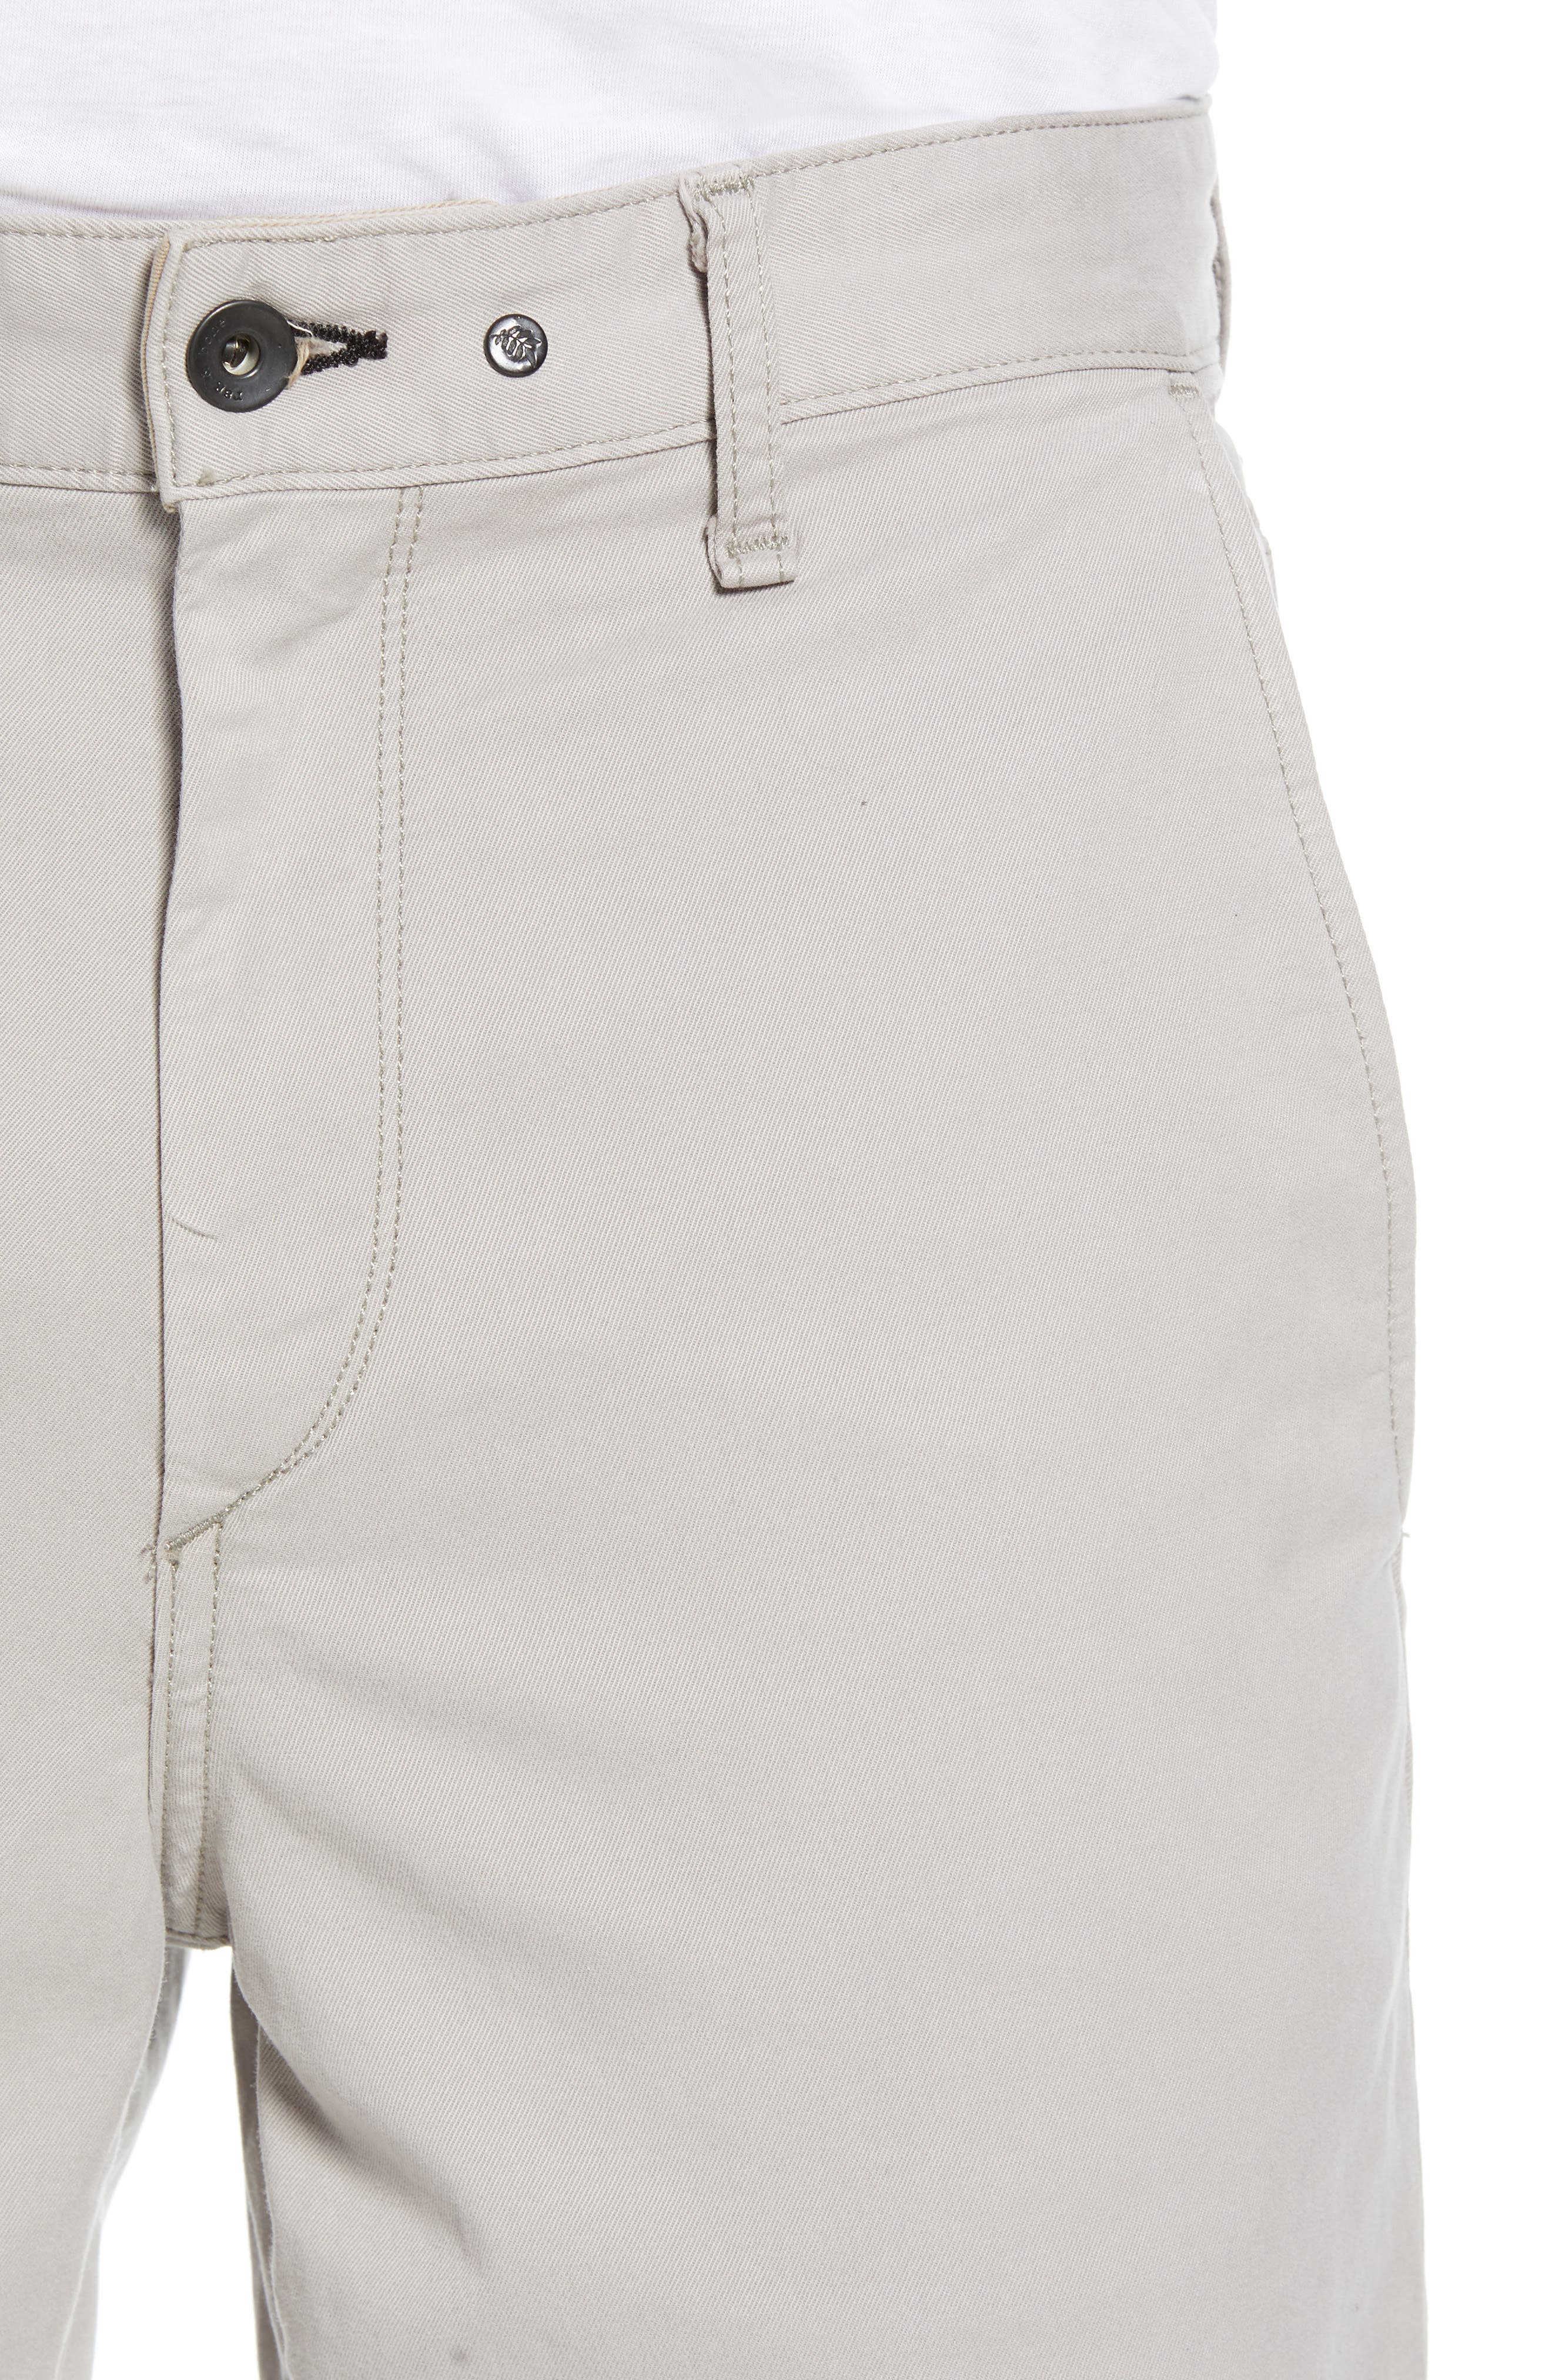 Fit 2 Classic Chinos,                             Alternate thumbnail 4, color,                             LIGHT GREY